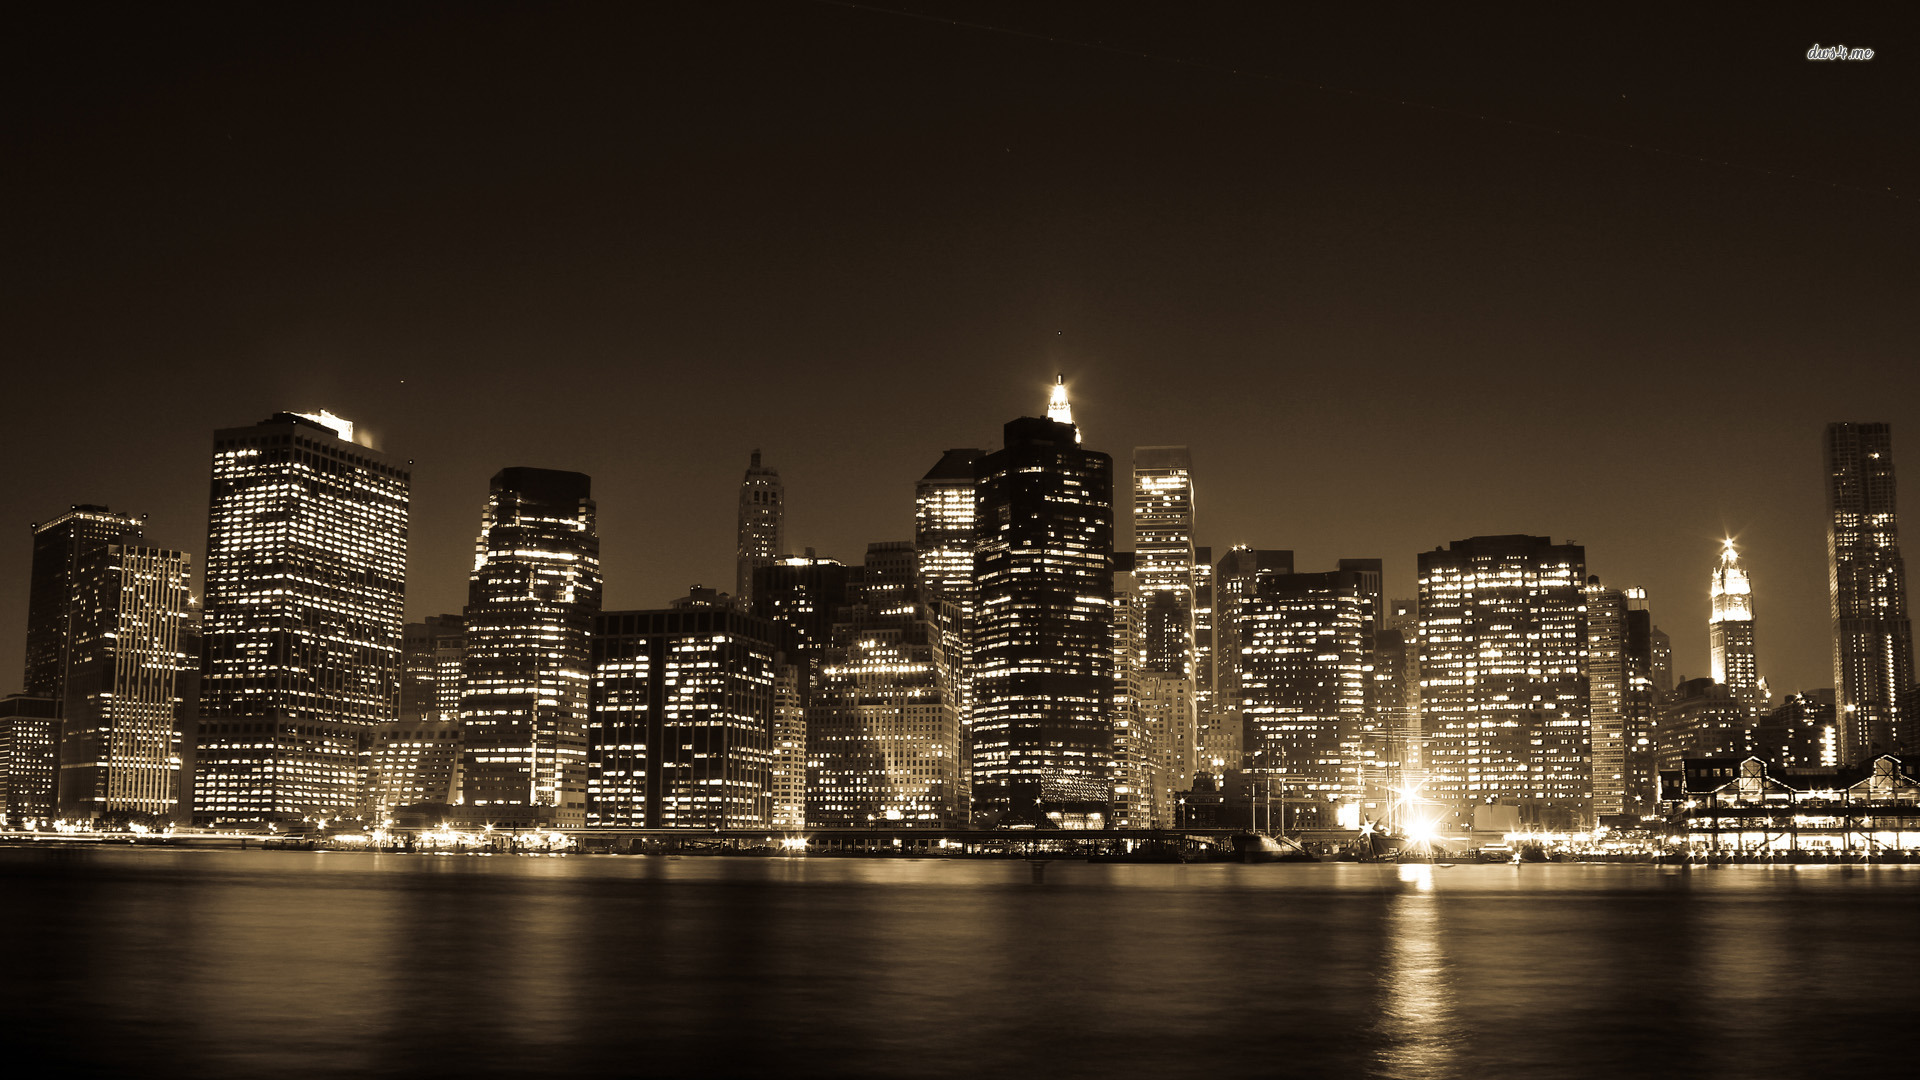 Desktop Backgrounds City Lights Desktop Image 1920x1080